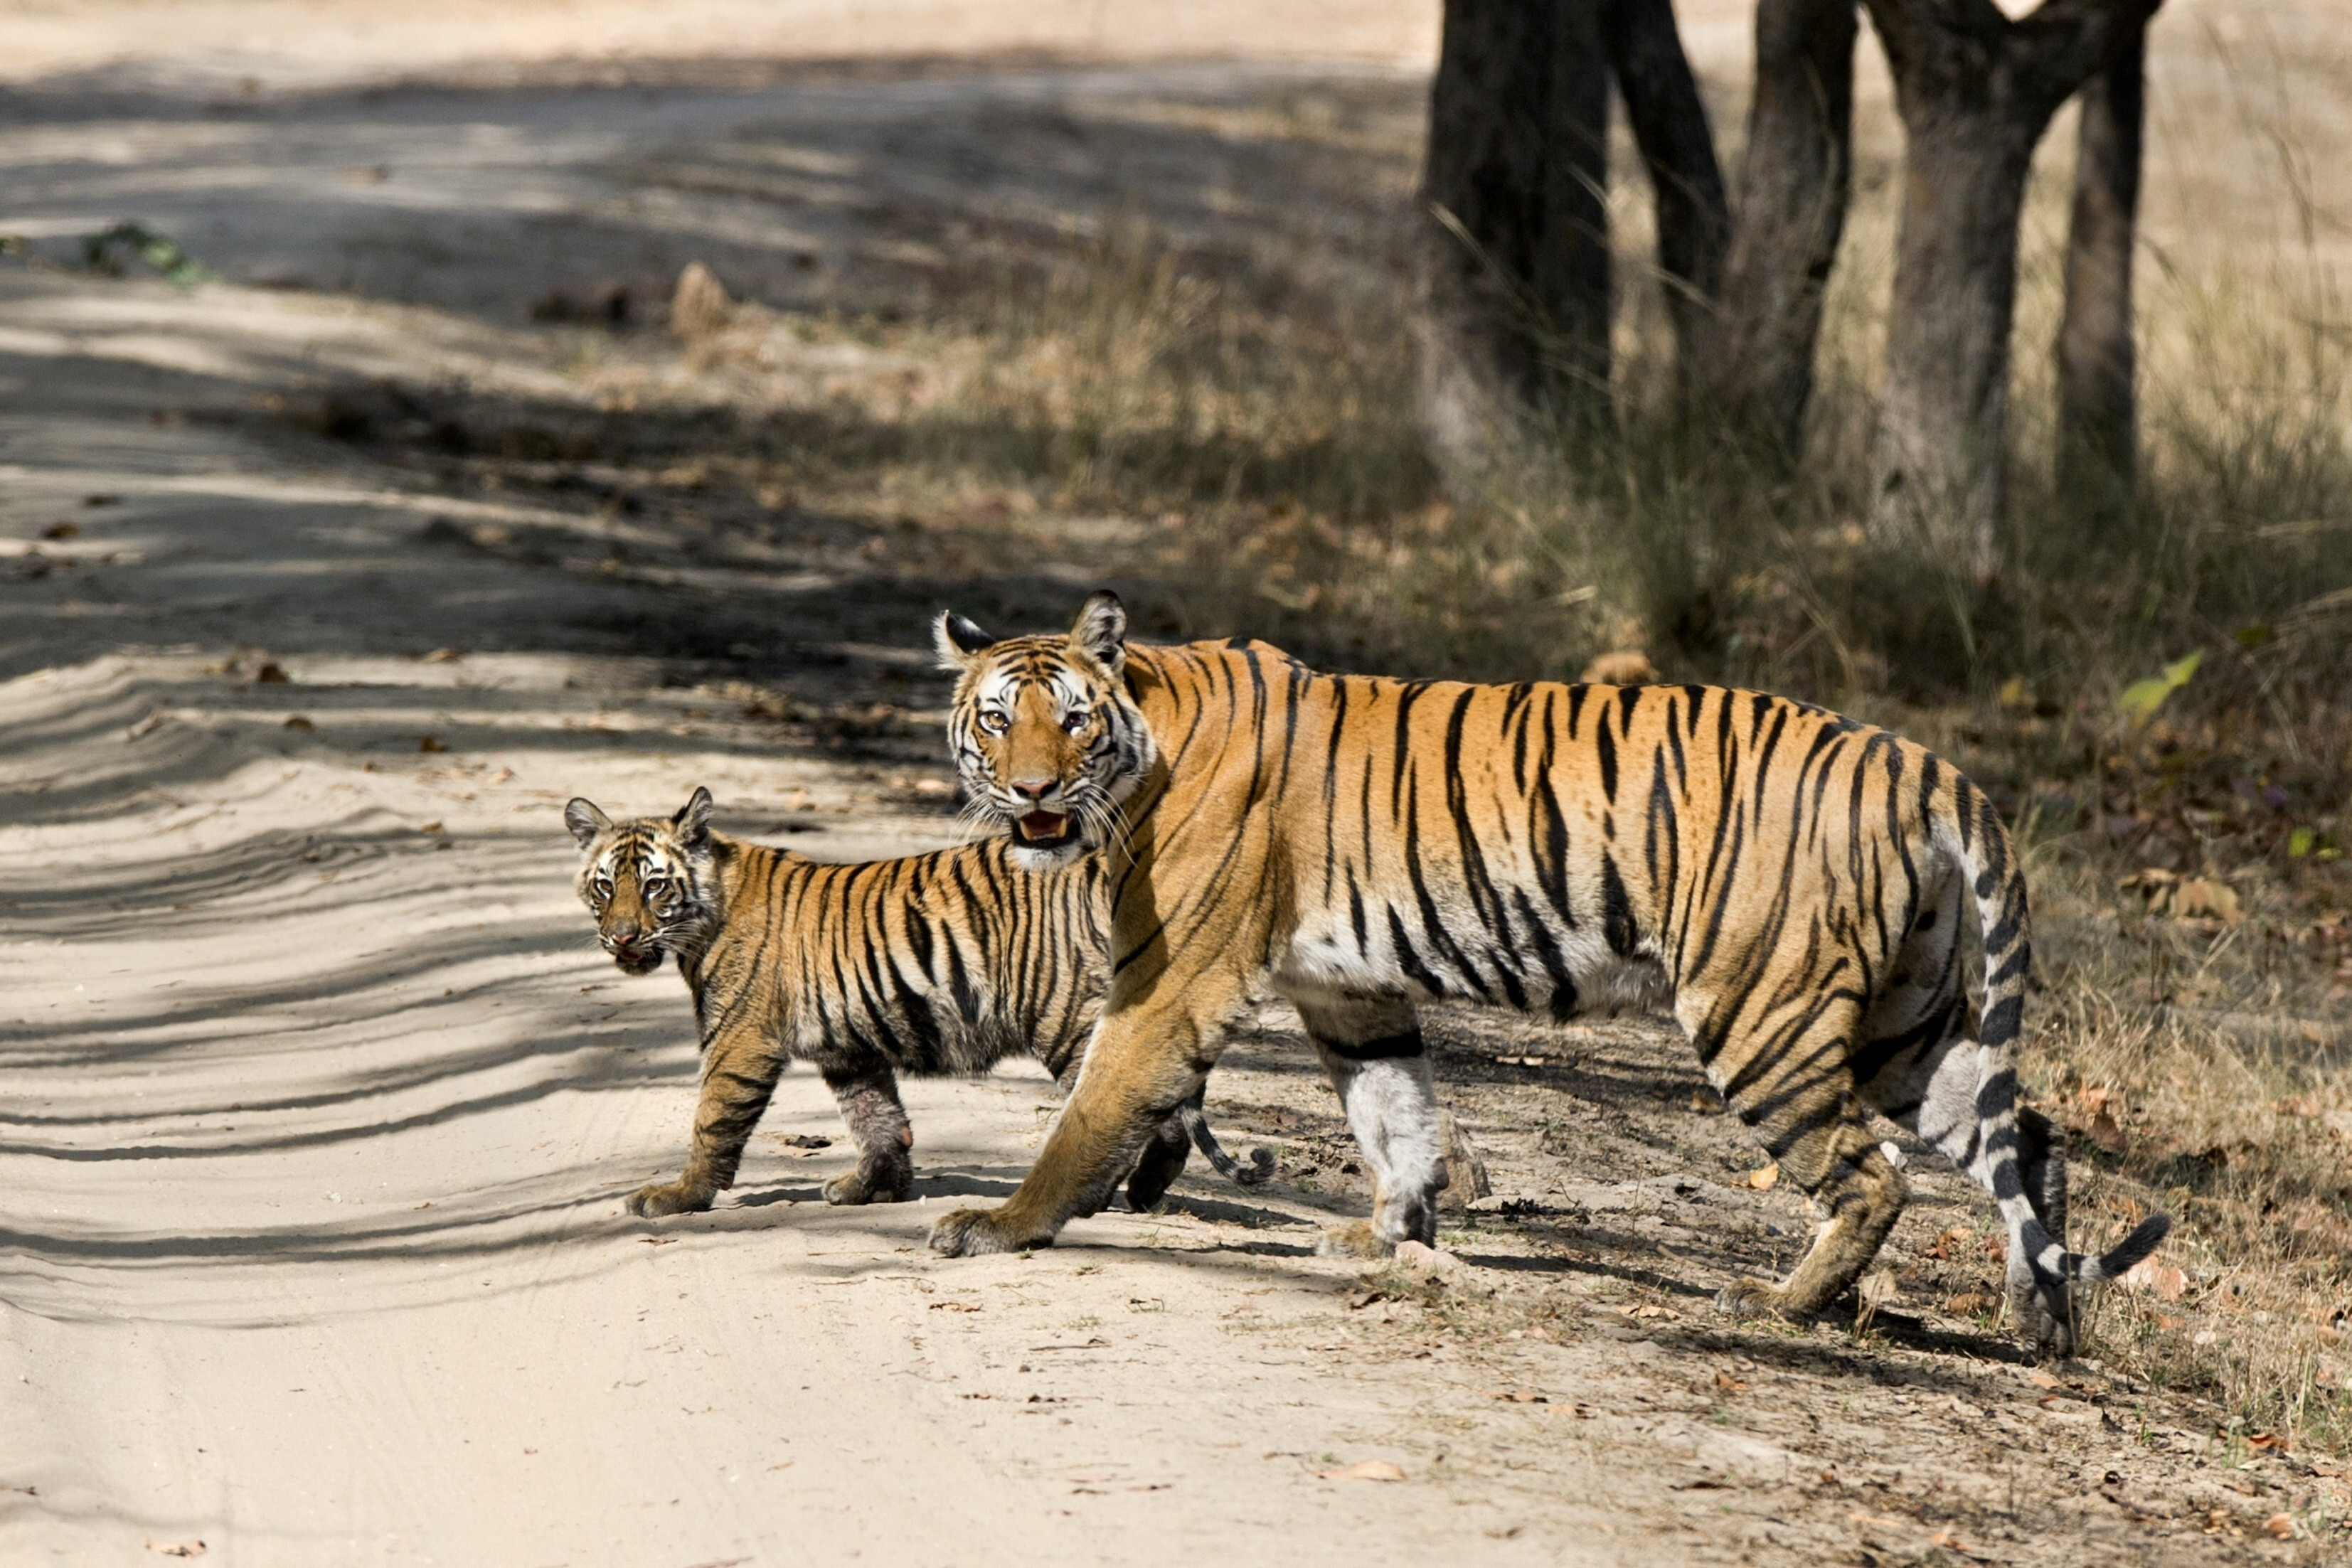 essay on wild animals tiger Essay on wild animal tiger as many people know, having wild animals as pets is becoming more popular, but should not be taken in wild animals like lions, tigers and bears are not considered to be good house pets like a dog or a cat (which are considered domestics animals.